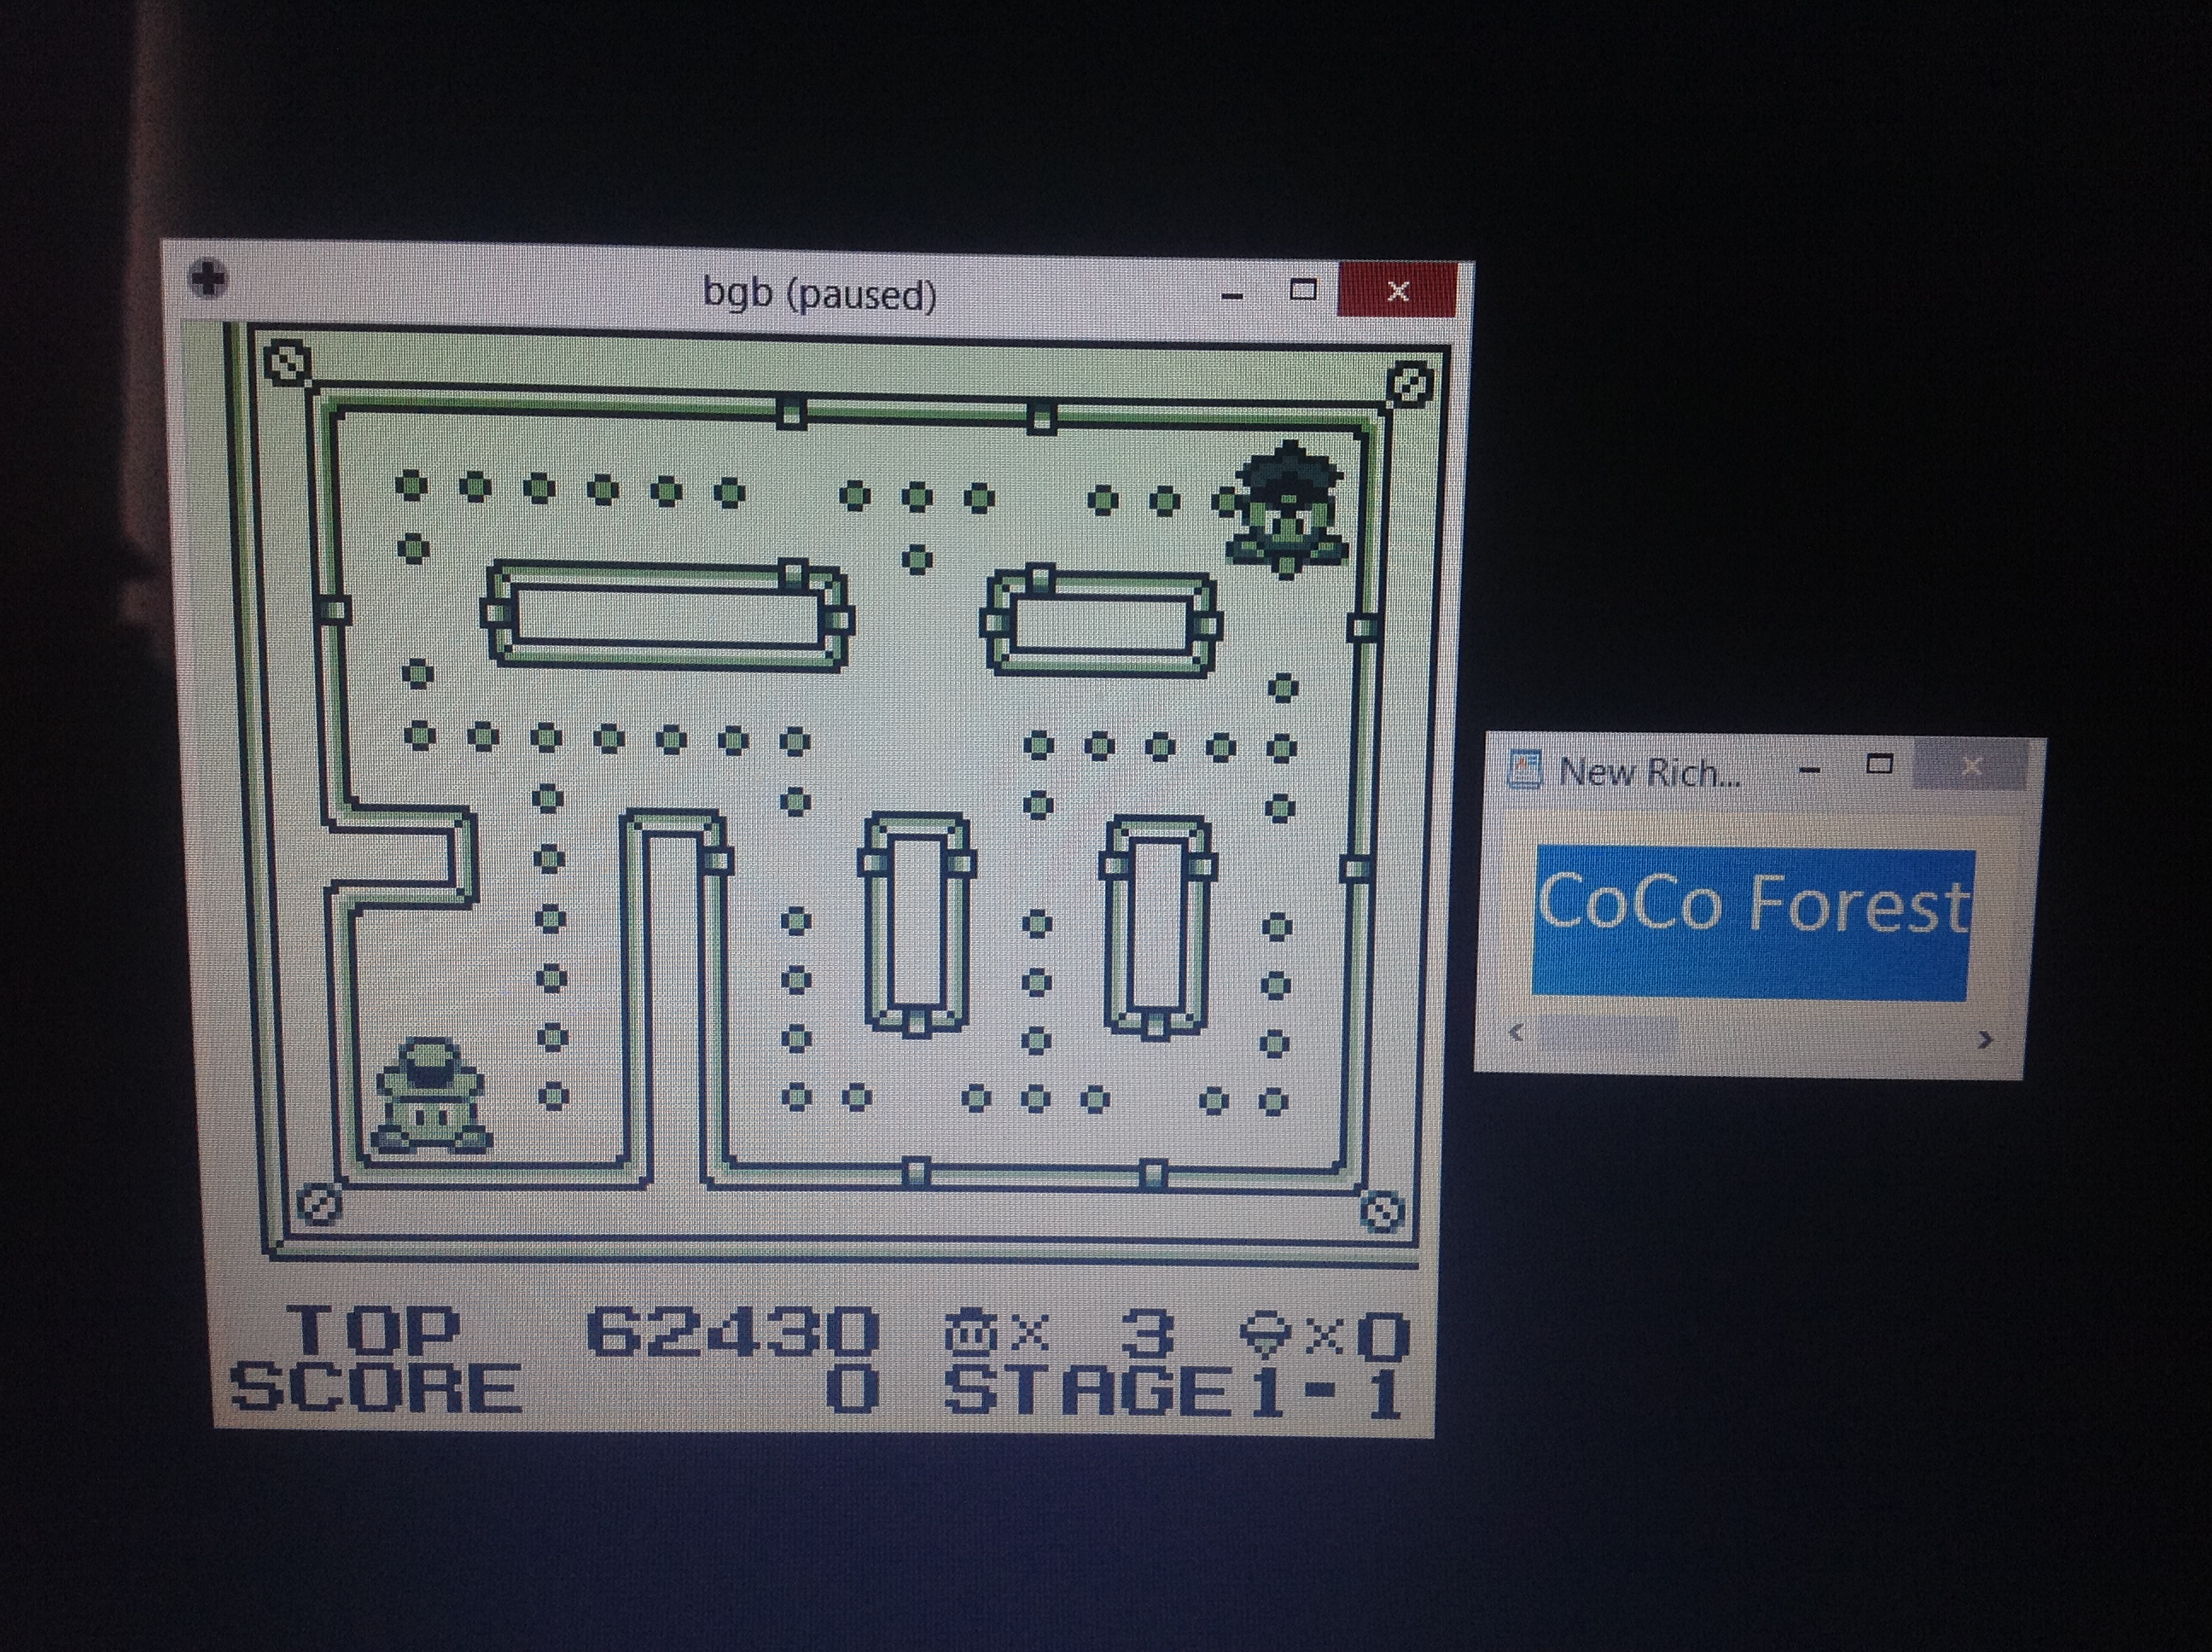 CoCoForest: Lock N Chase (Game Boy Emulated) 62,430 points on 2018-10-08 08:15:44